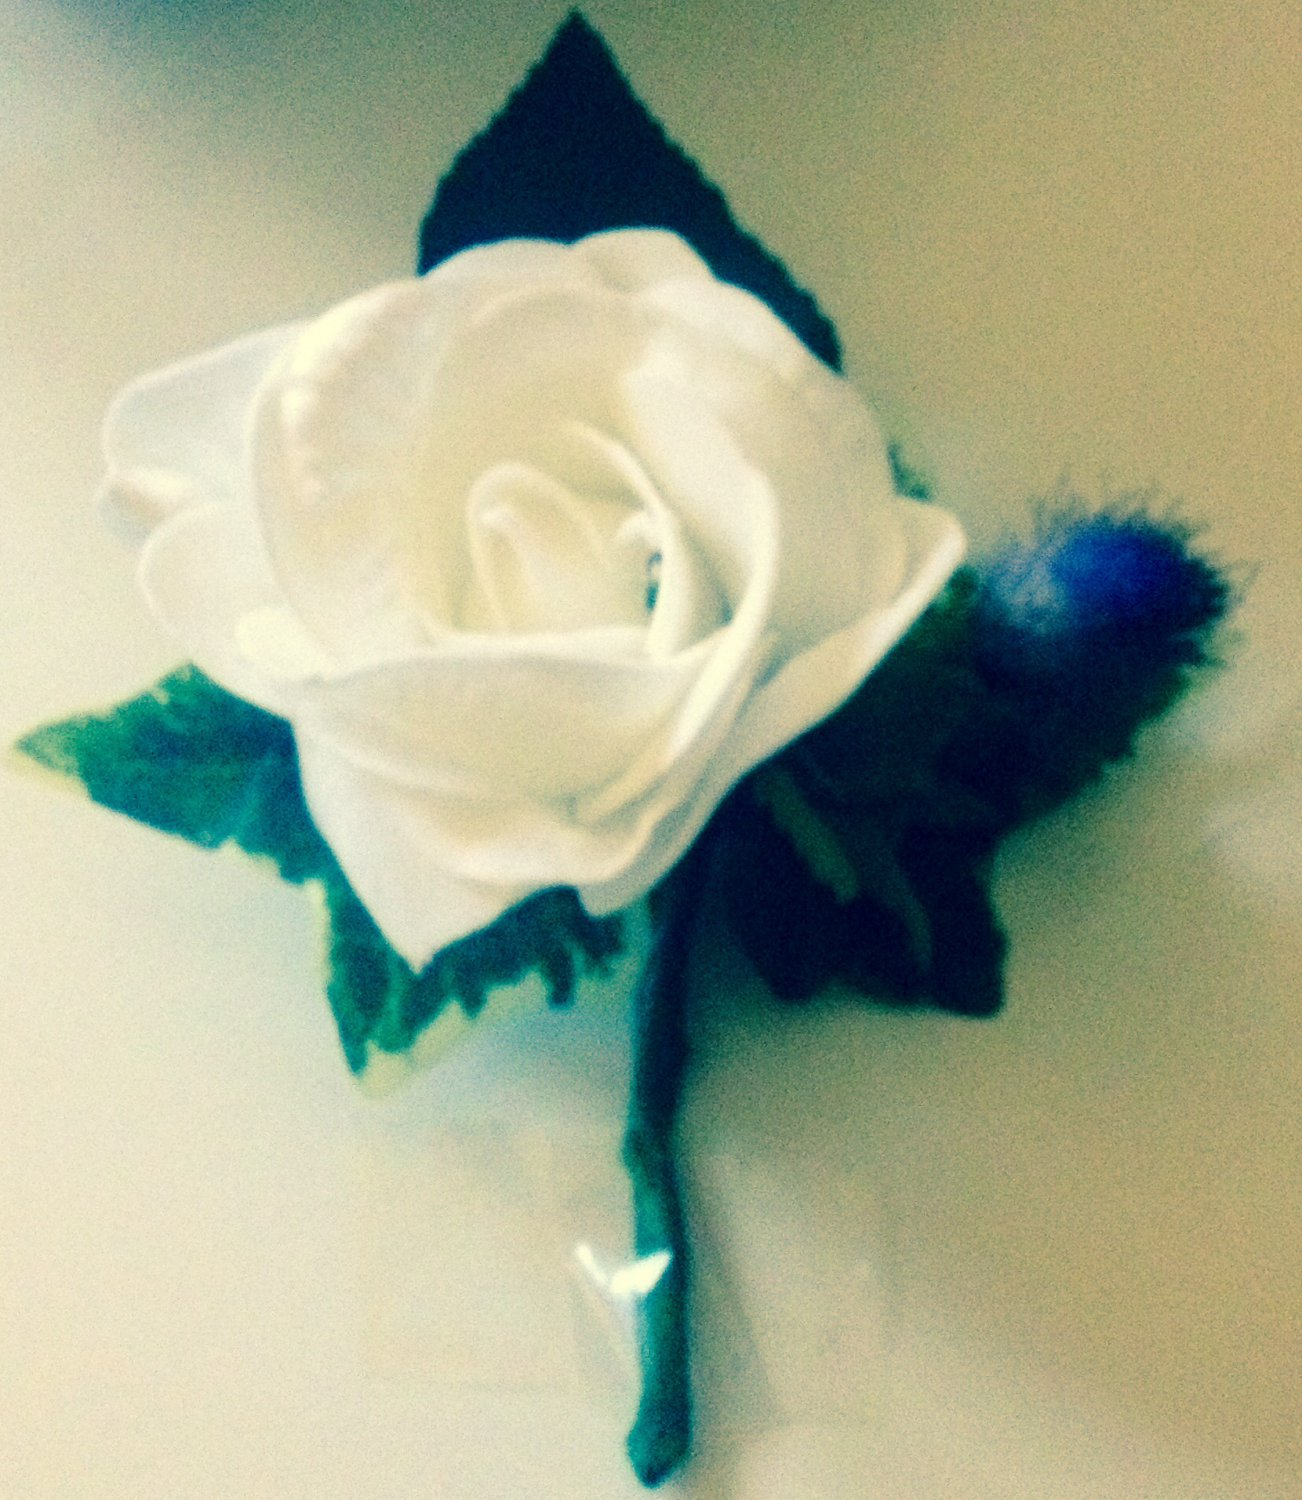 Artificial gents buttonhole Rose and Thistle.